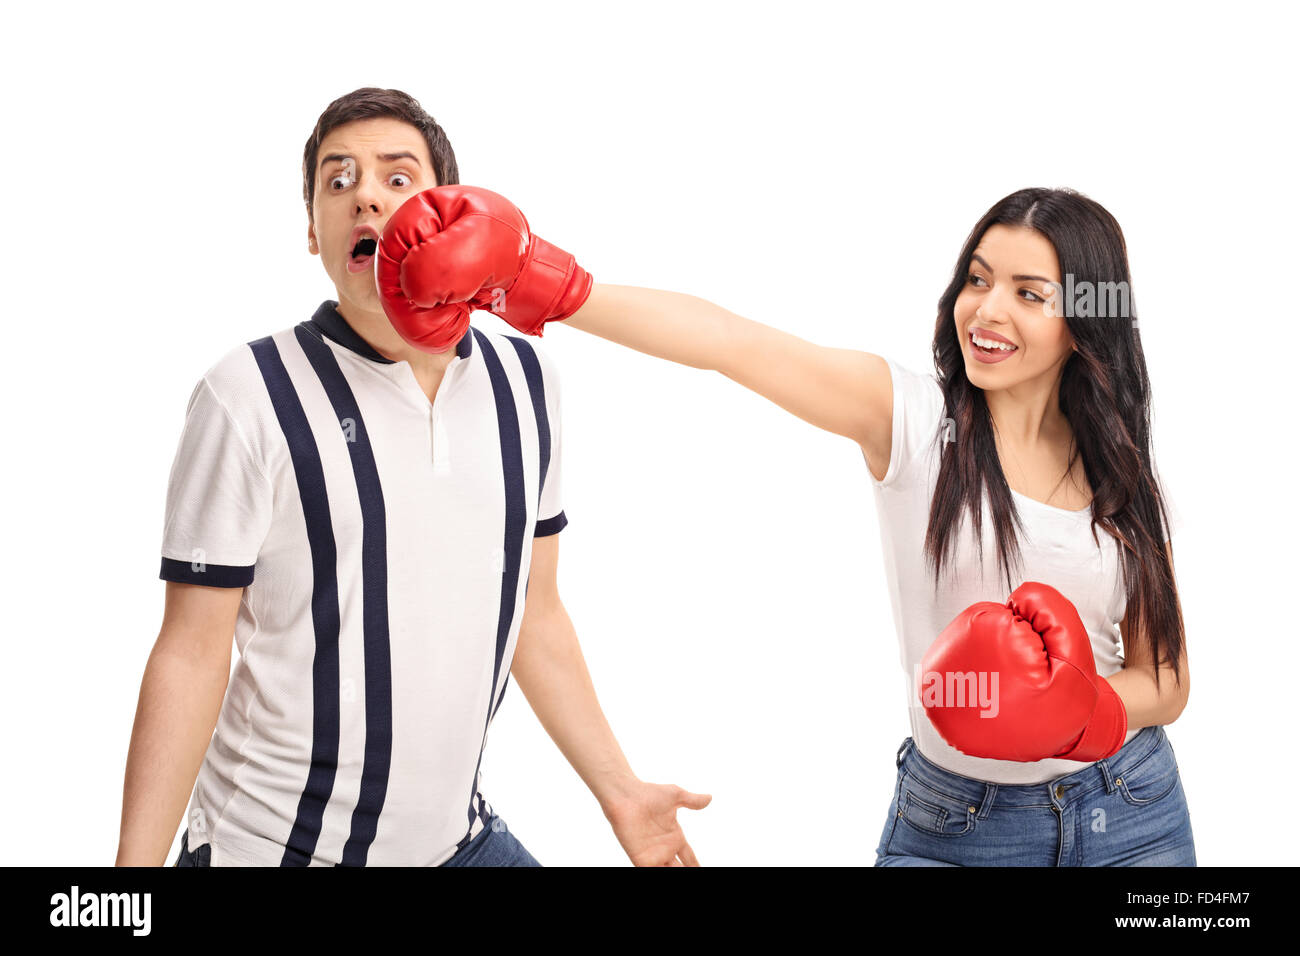 Cheerful woman punching her boyfriend with boxing gloves isolated on white background - Stock Image